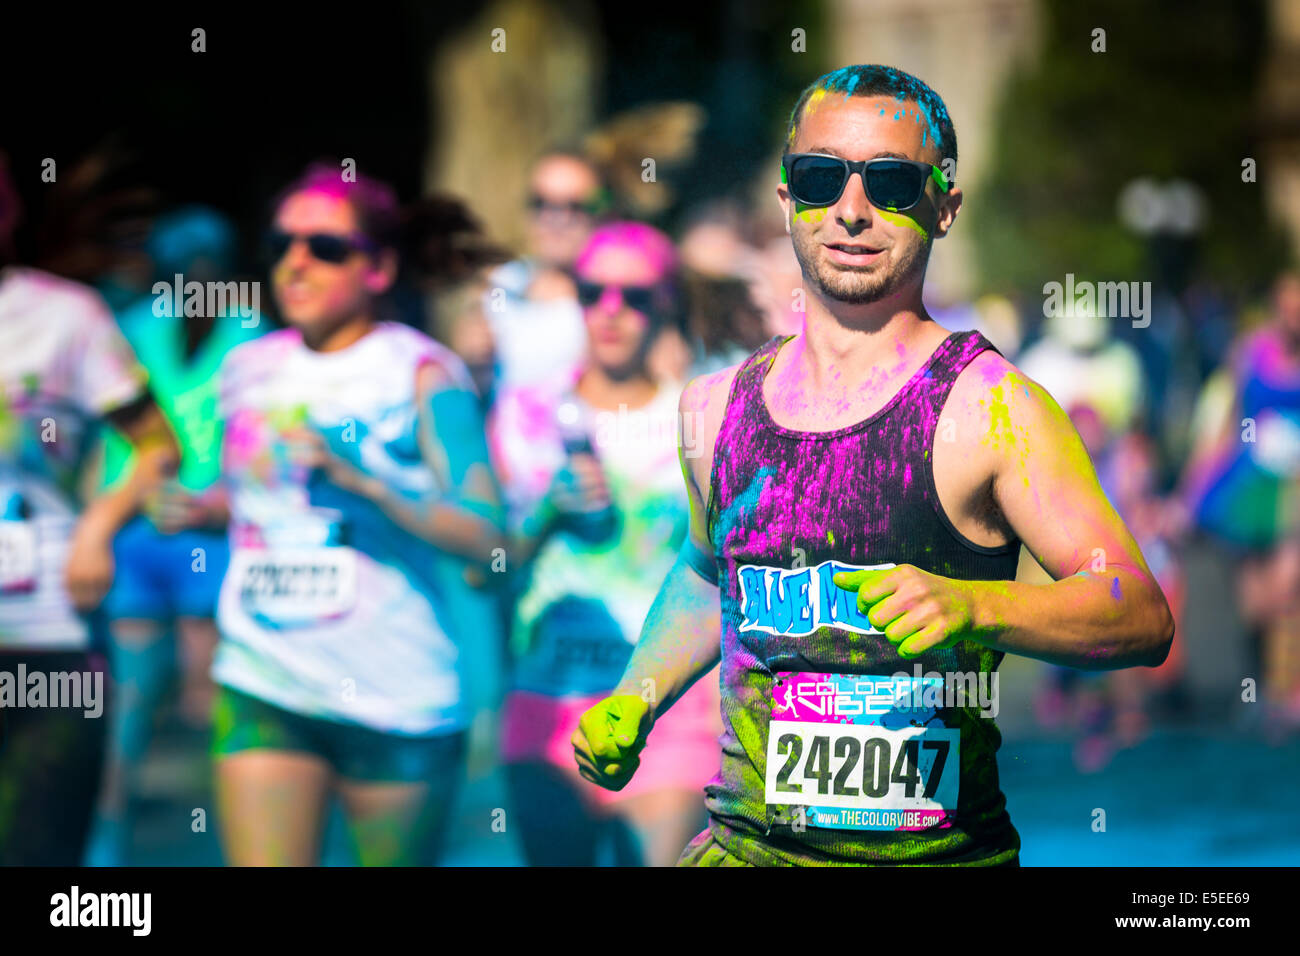 Young man runs the Color Vibe 5K race. Color Vibe is a fun un-timed event with no winners or prizes where runners - Stock Image